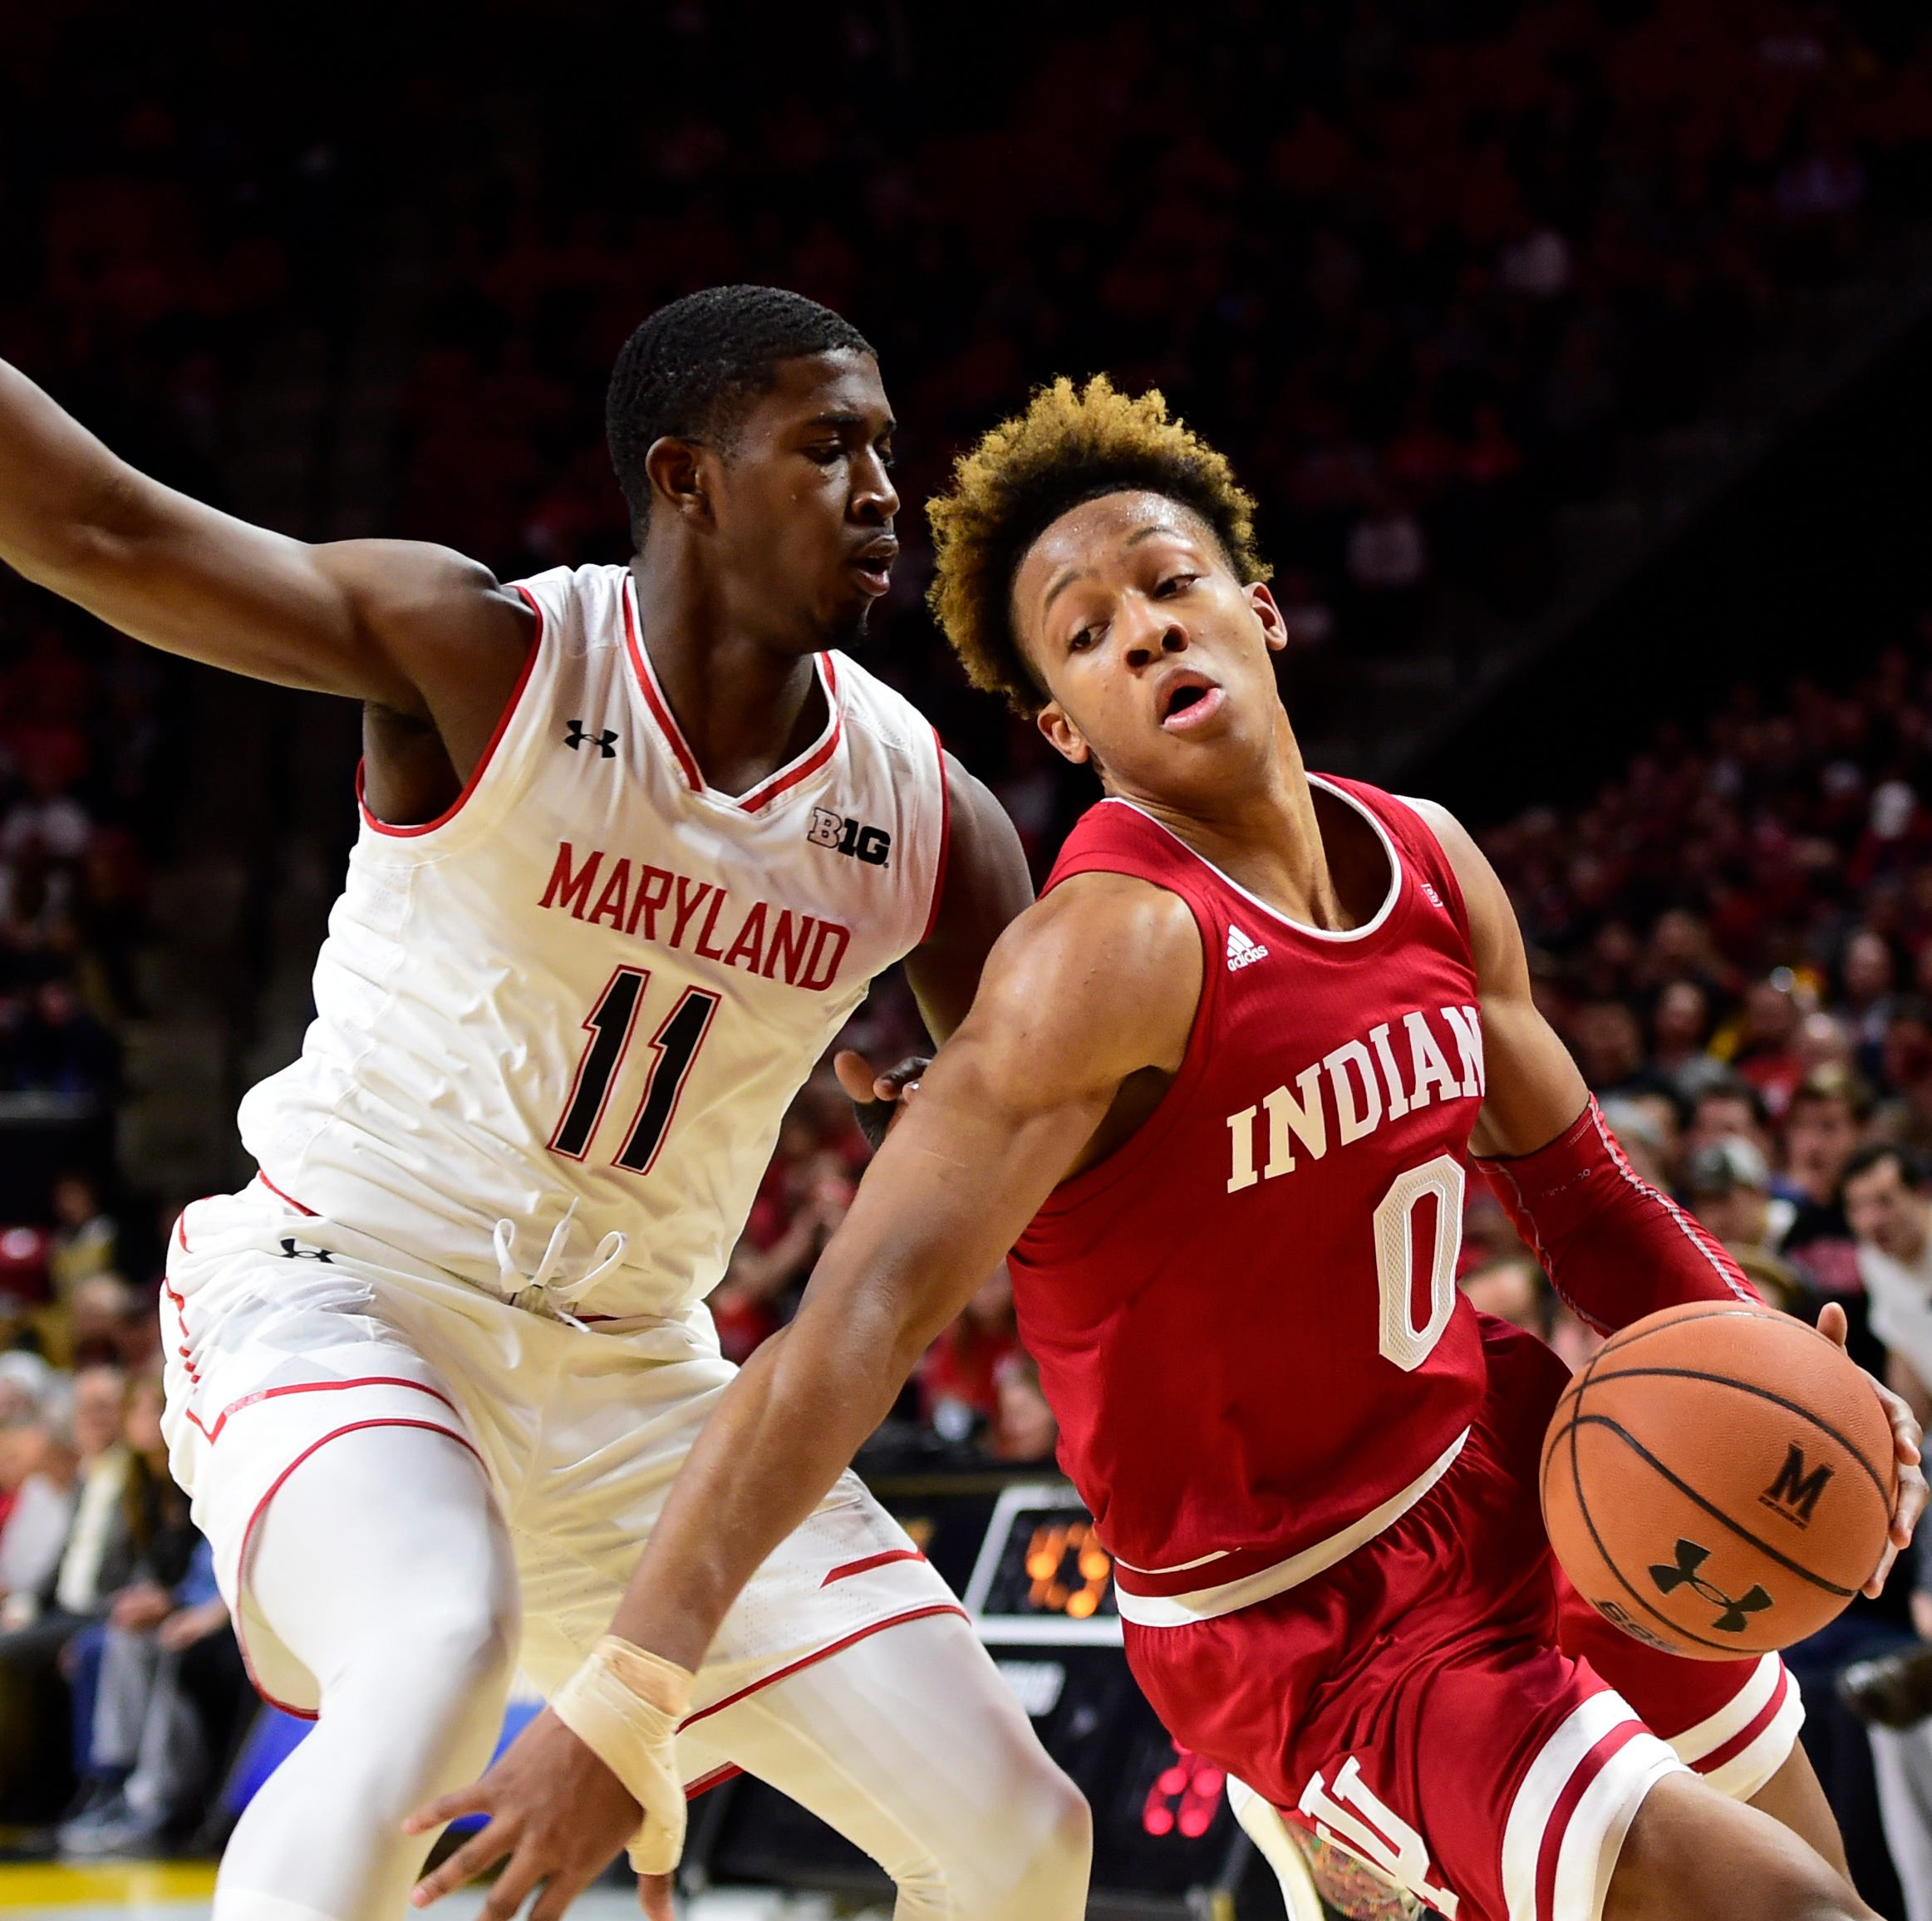 Insider: Langford is sensational, but IU struggles with defense, depth and rebounding